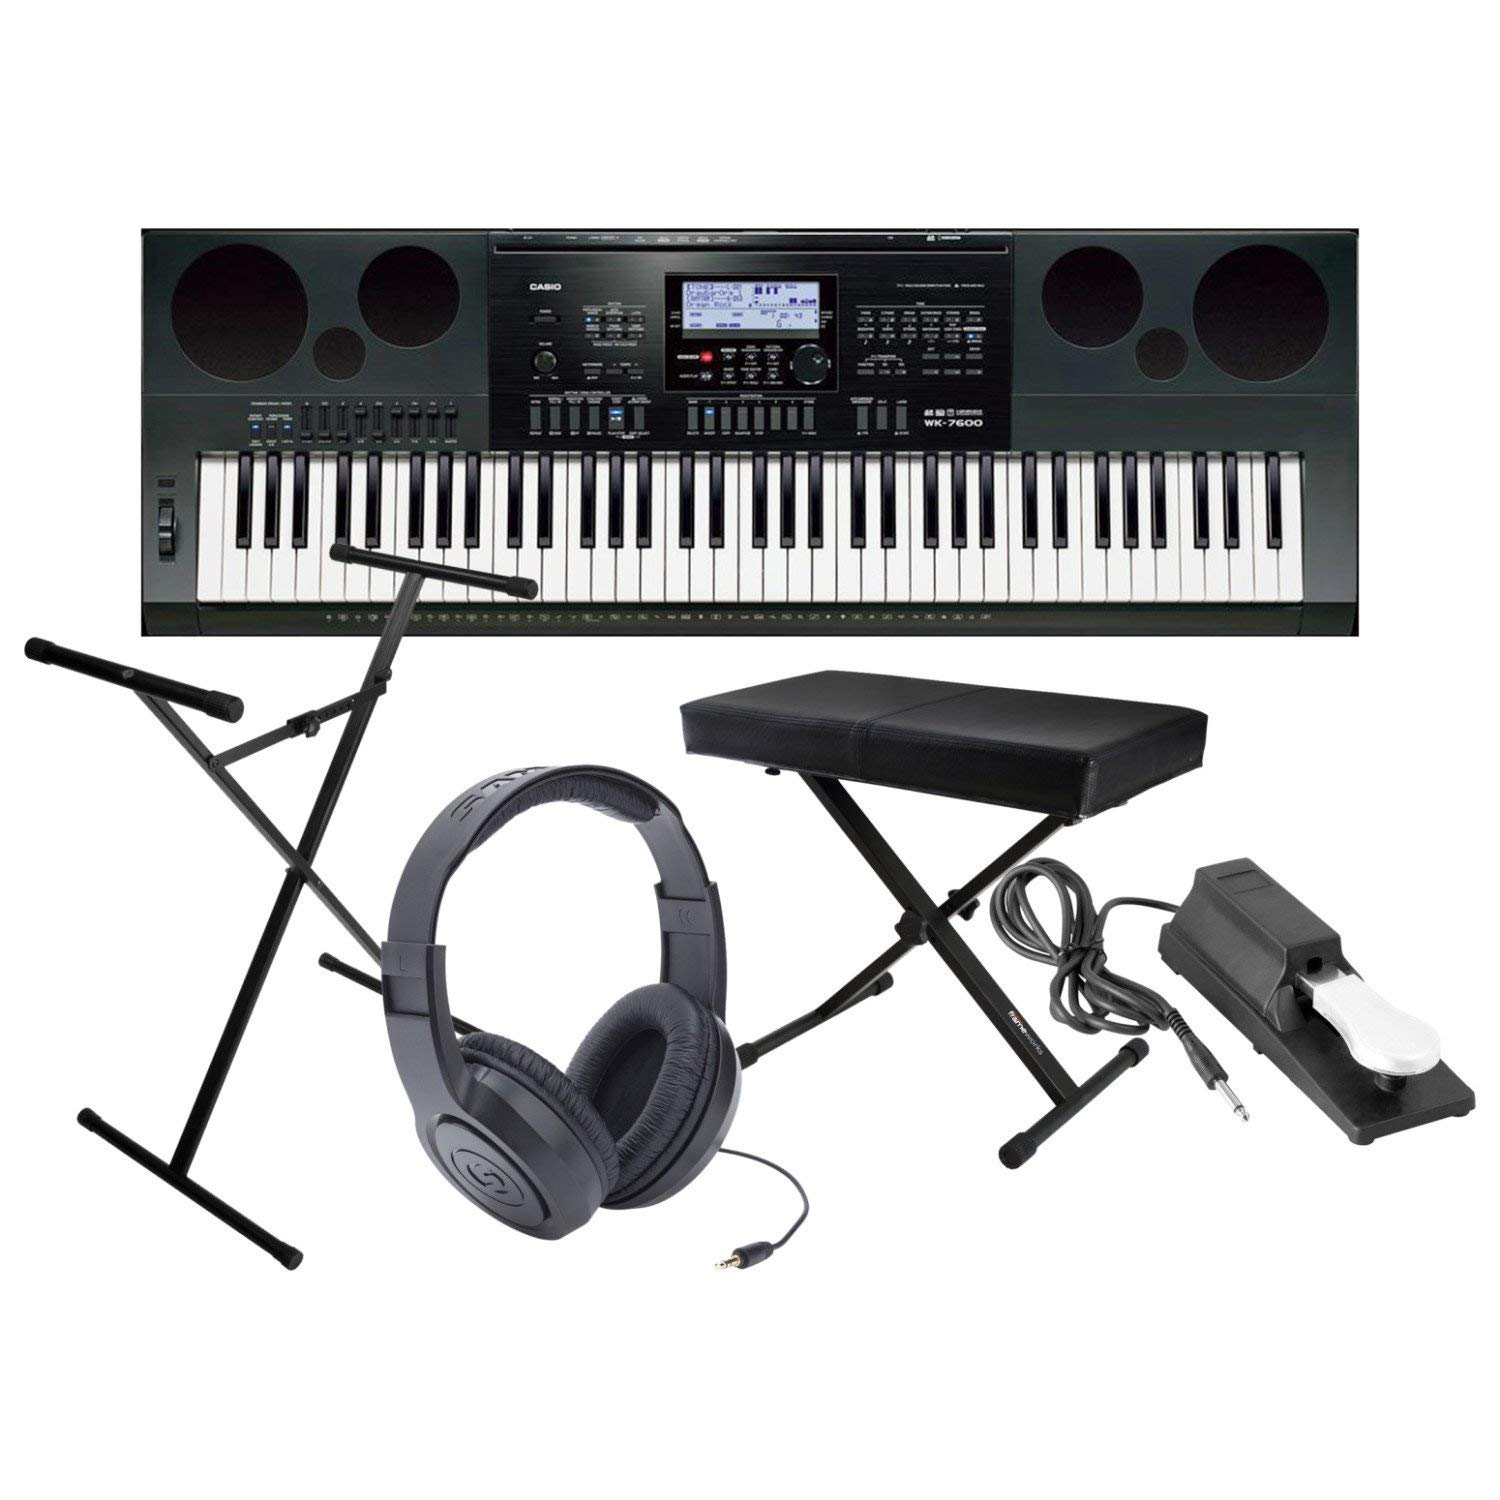 Get Quotations · Casio WK7600 Workstation Keyboard w/ Bench, Stand, Sustain  Pedal, and Headphones